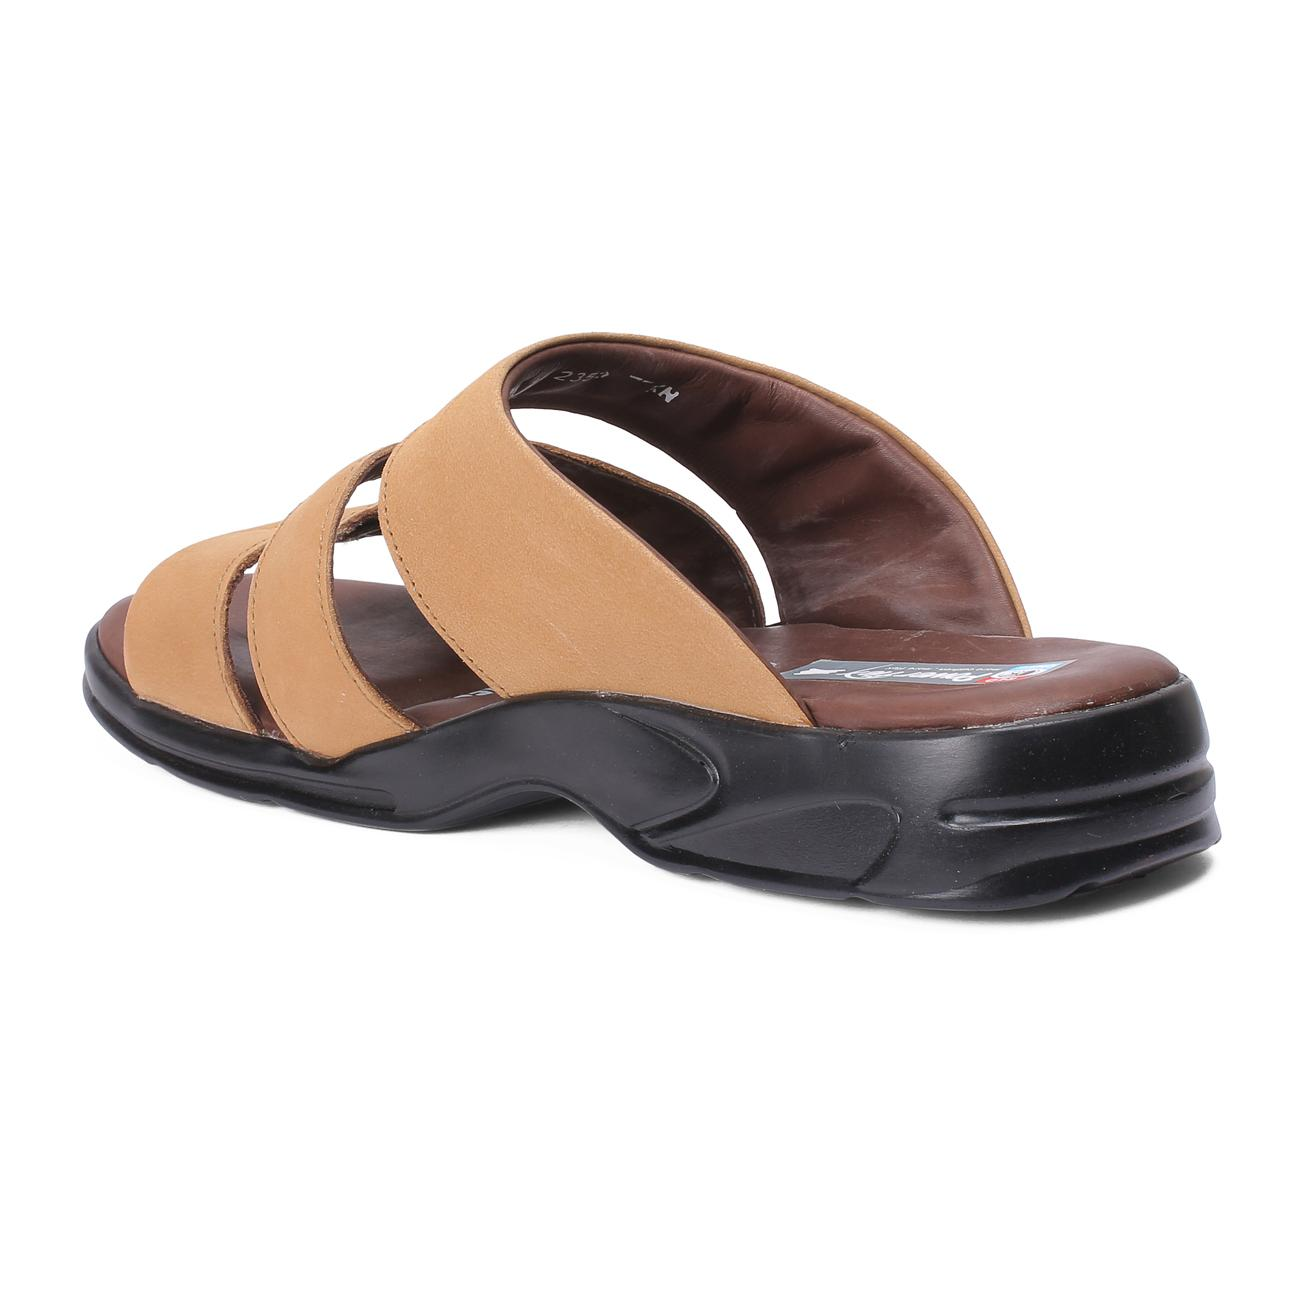 rust slip-on slippers side view_2